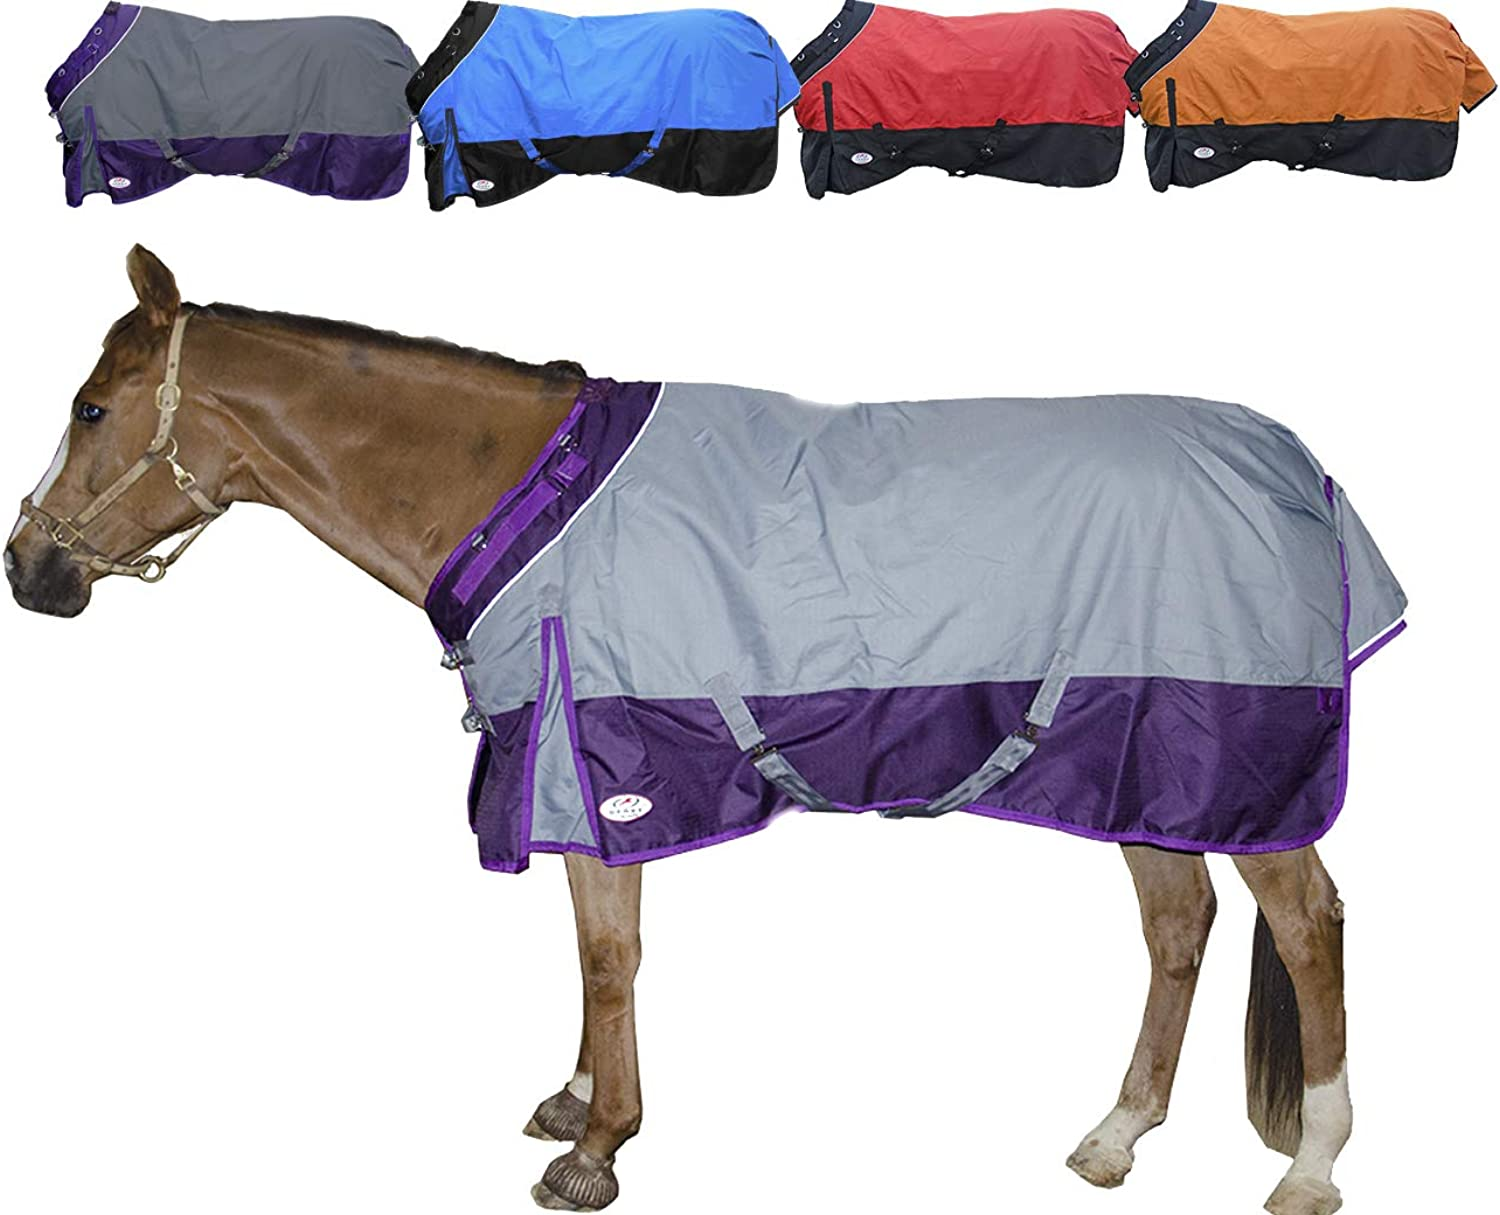 Derby Originals 1200D Windstorm Series Breathable Ripstop Nylon Heavyweight Horse Turnout Blanket